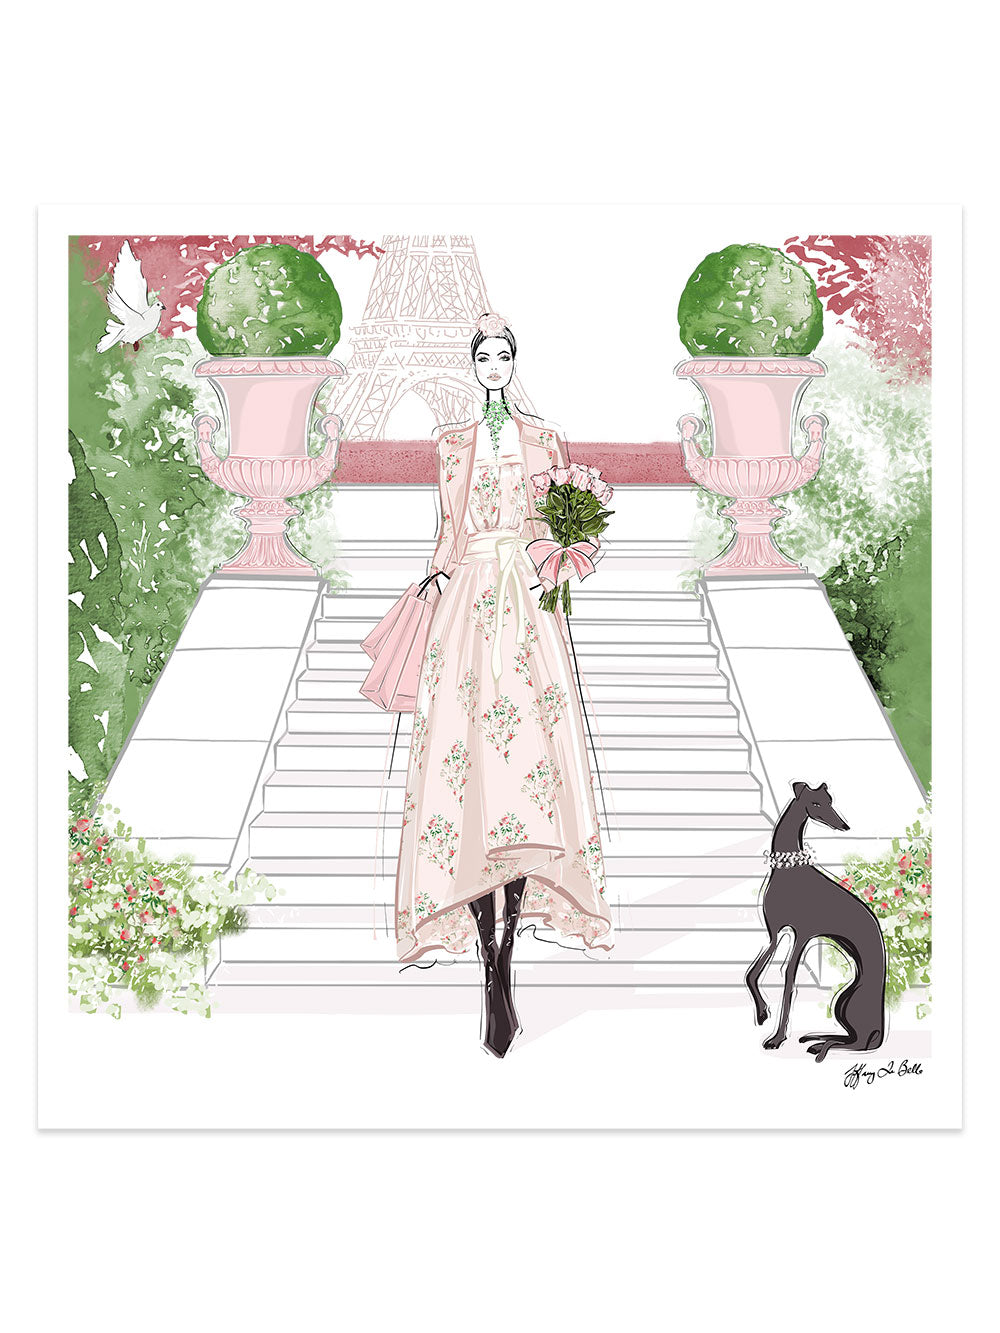 Parisienne Floral - Illustration - Limited Edition Print - Tiffany La Belle